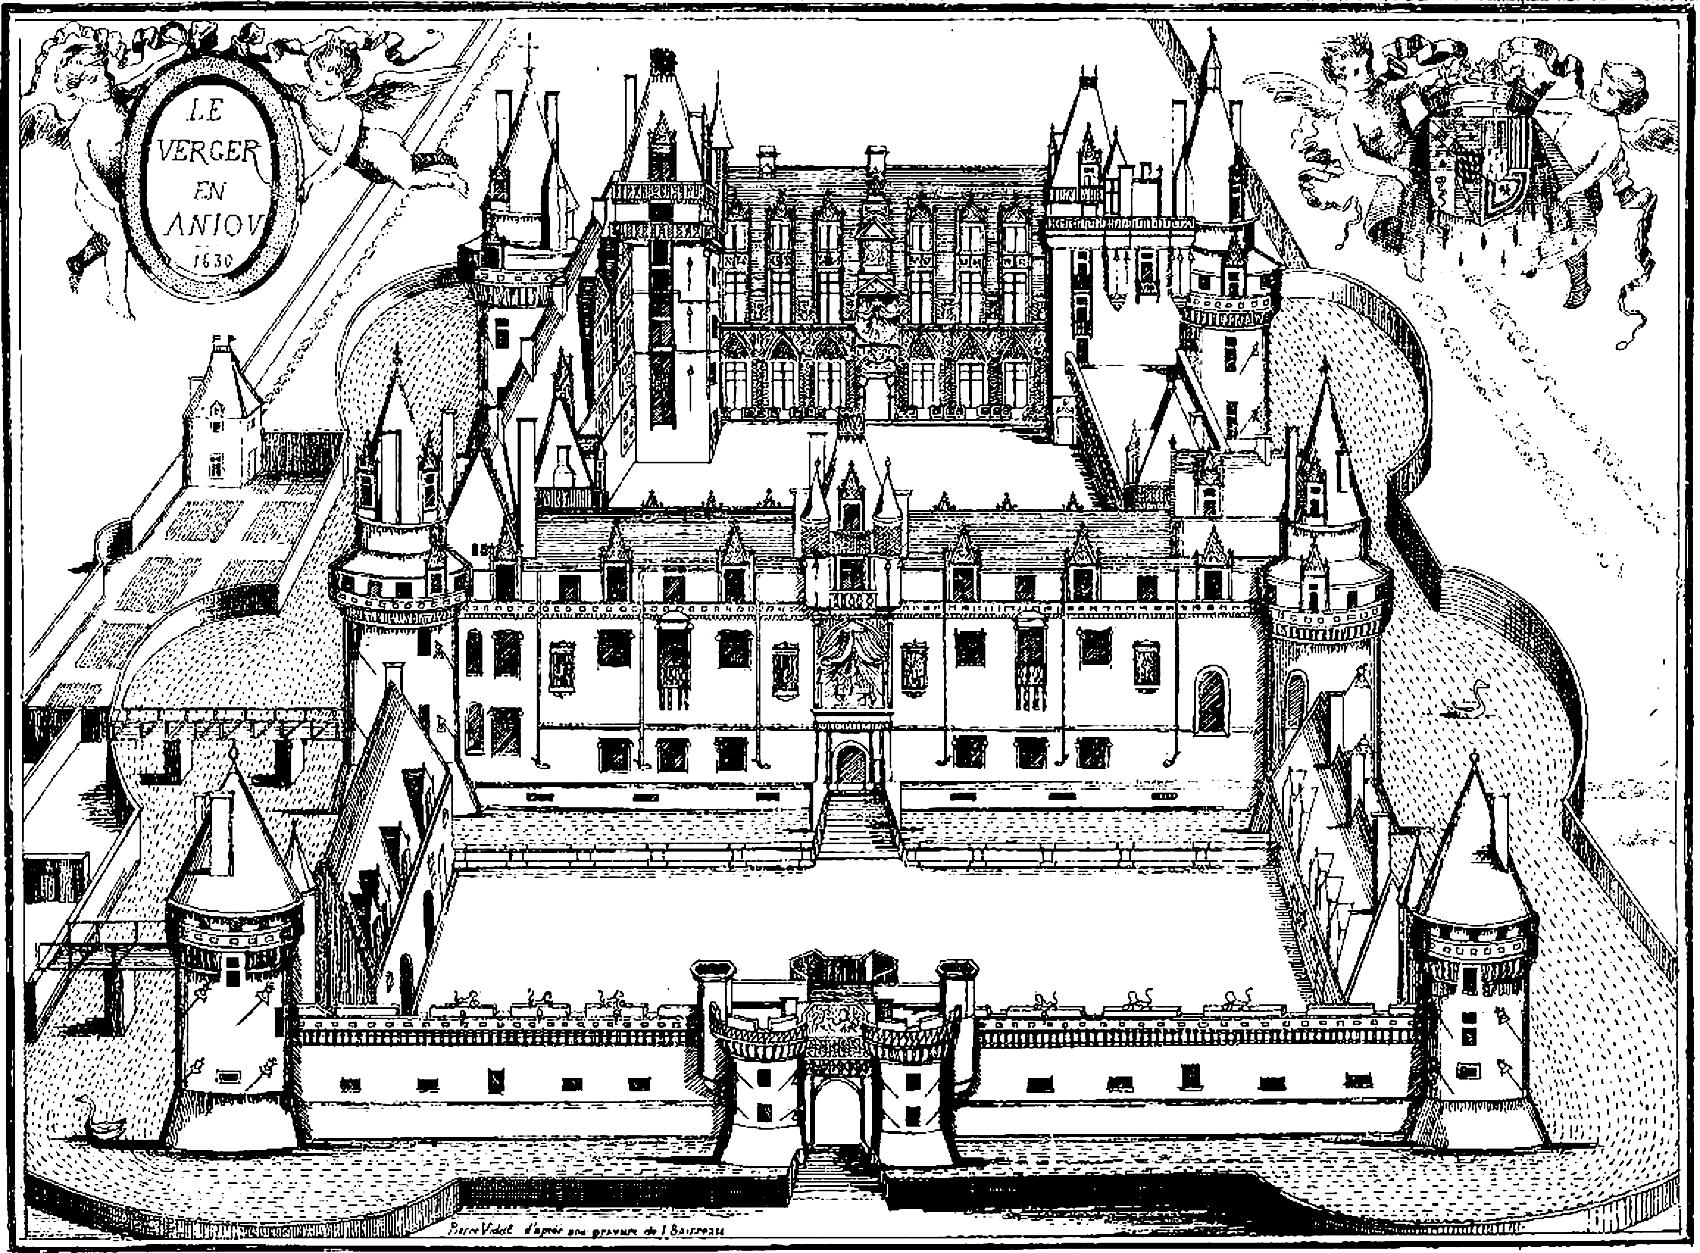 A Castle engraving